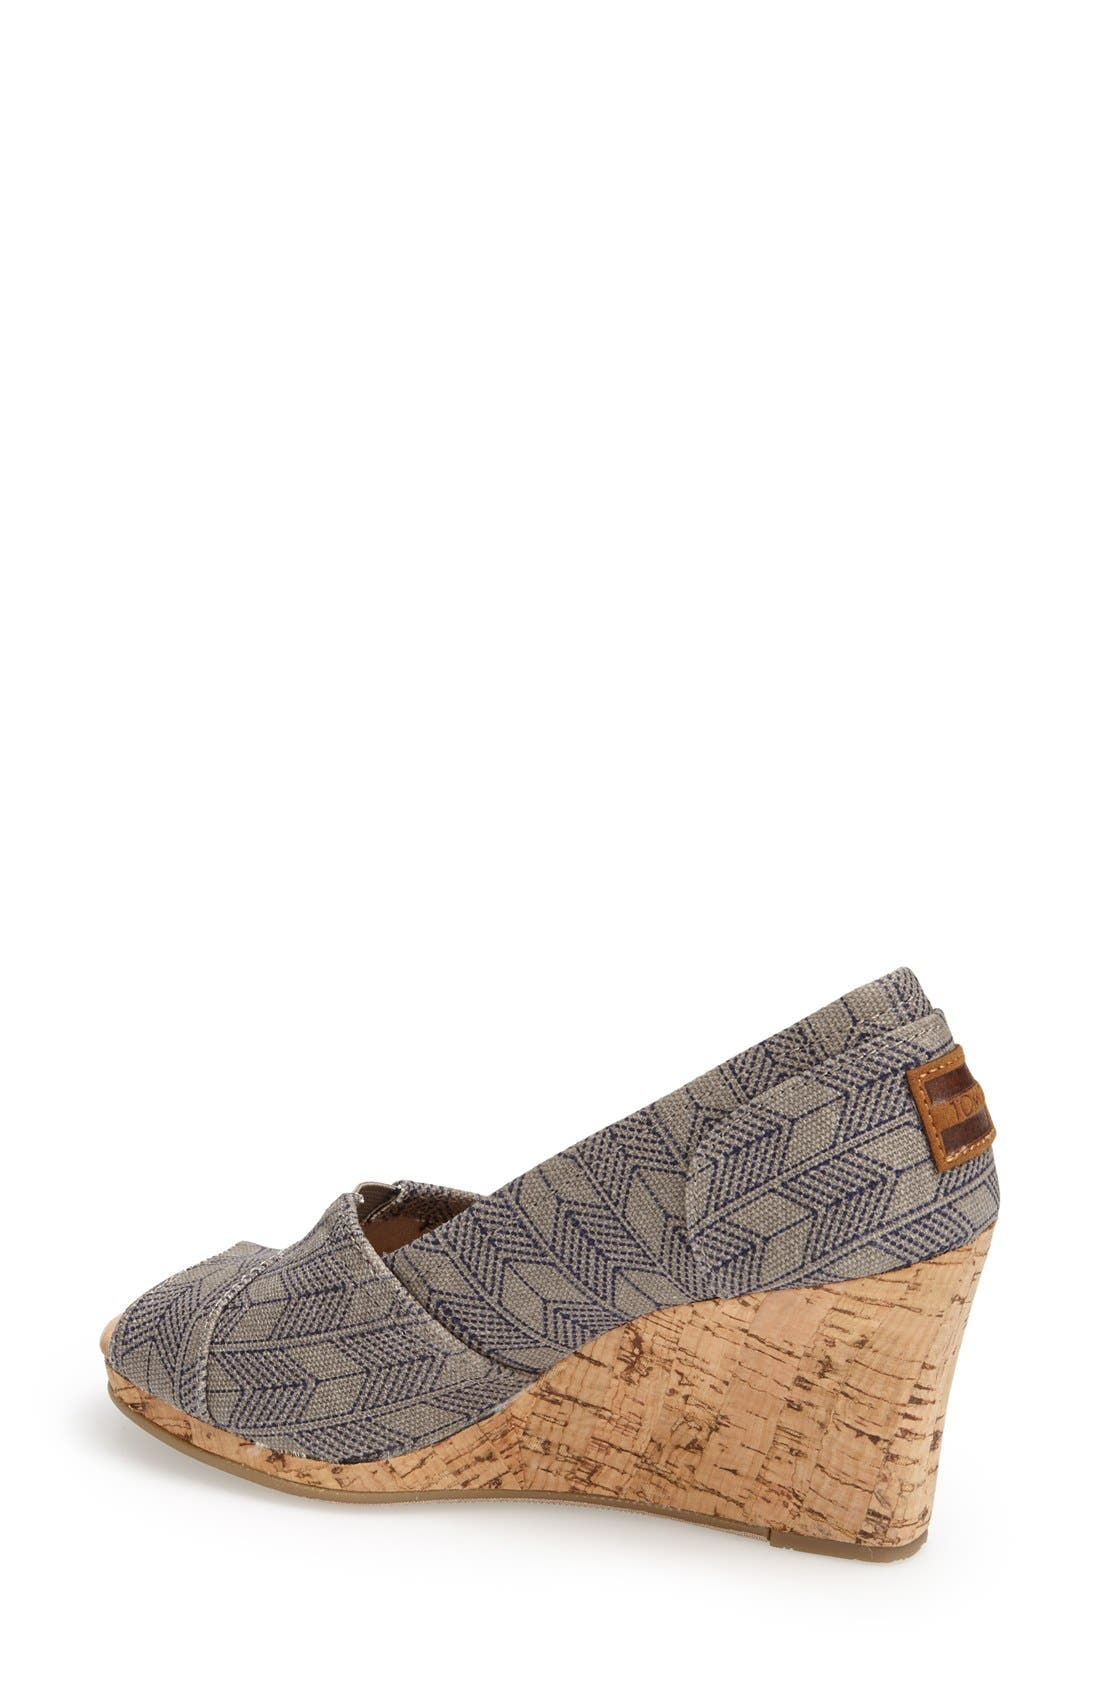 'Classic - Shashiko' Woven Wedge Sandal,                             Alternate thumbnail 2, color,                             Grey